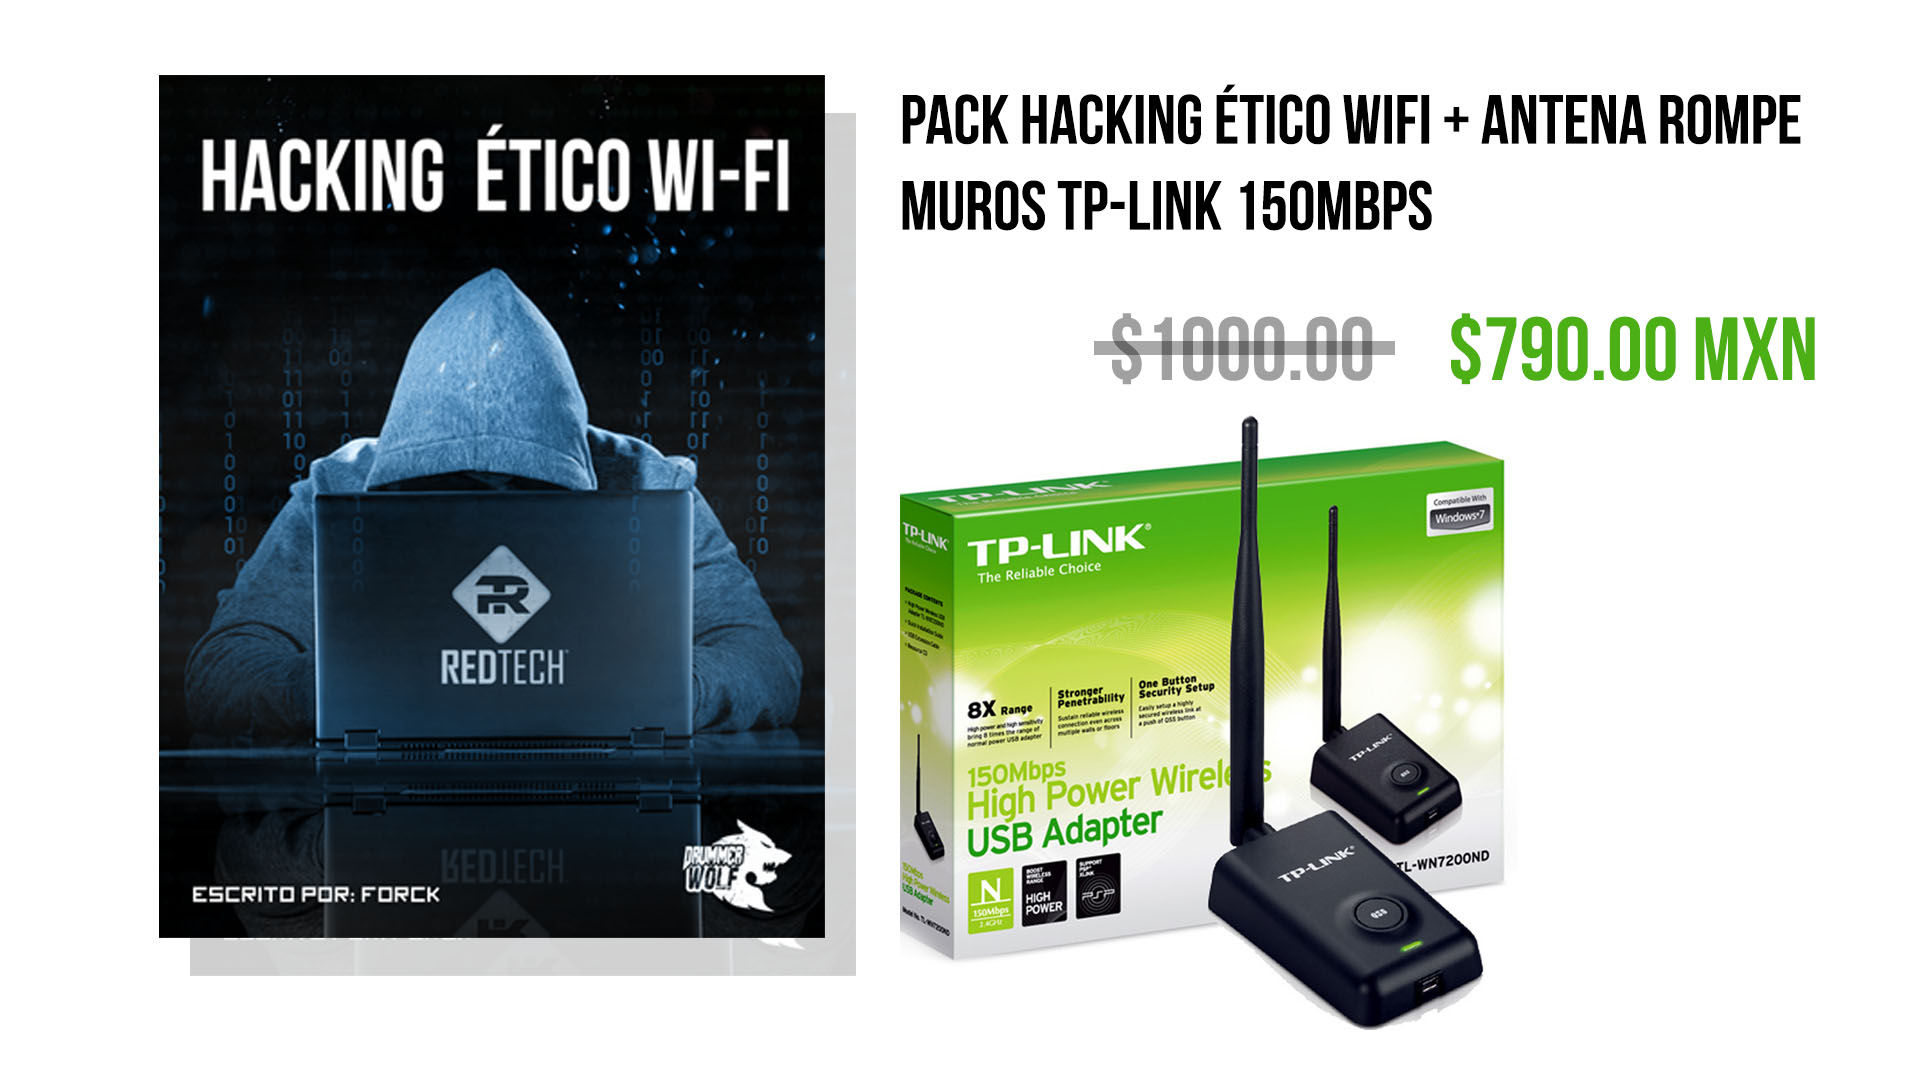 Pack de Hacking Etico